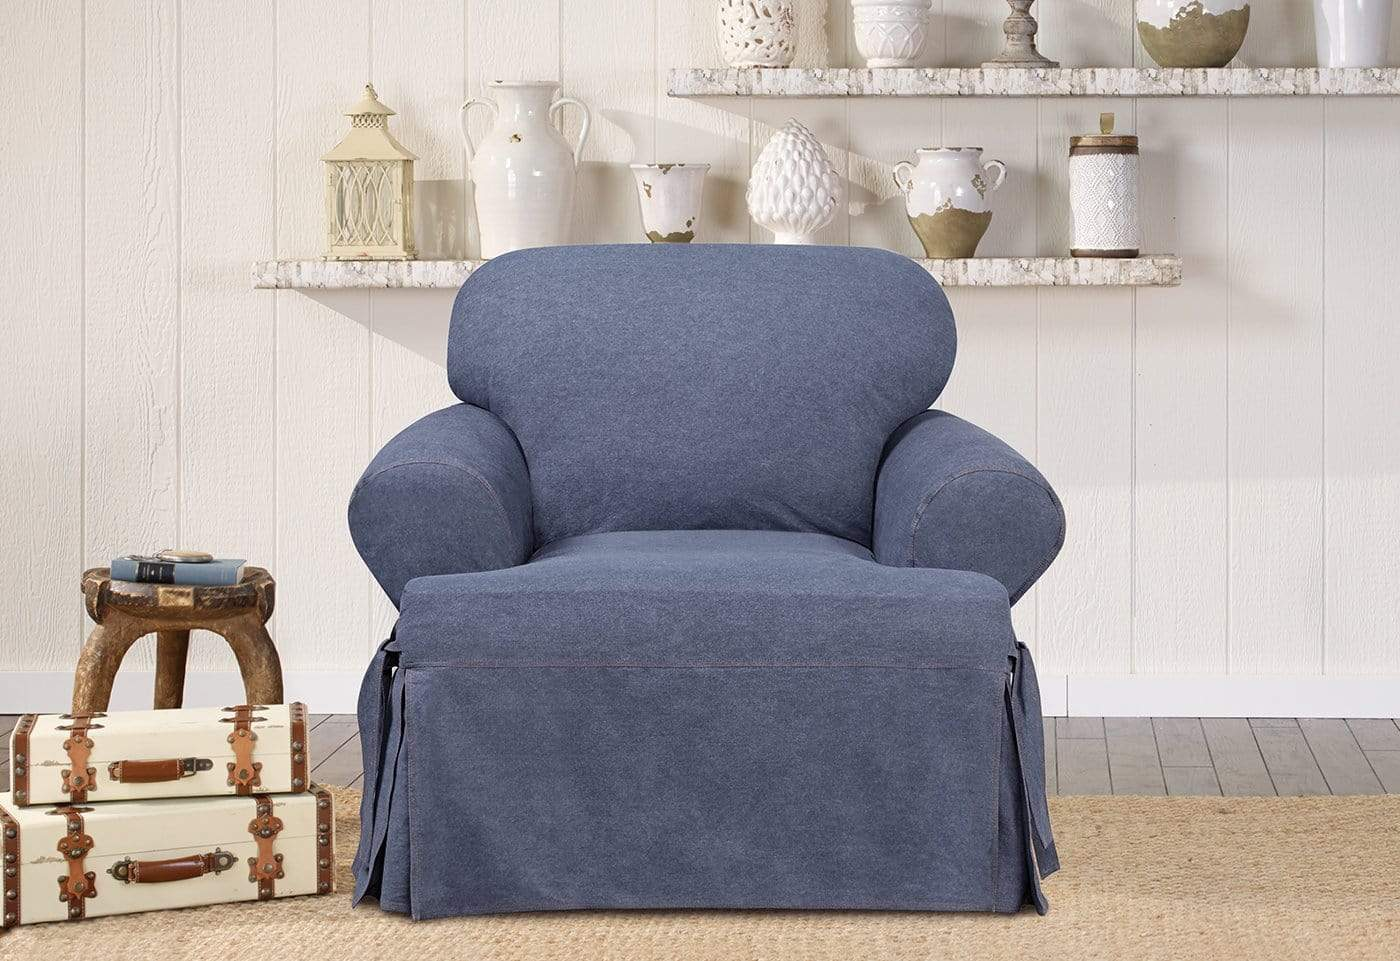 only slip sofa photo denim sensations sectional sleeperovers design recliner with cushions striking cover for cushionsslipcover reclinersslipcover slipcover